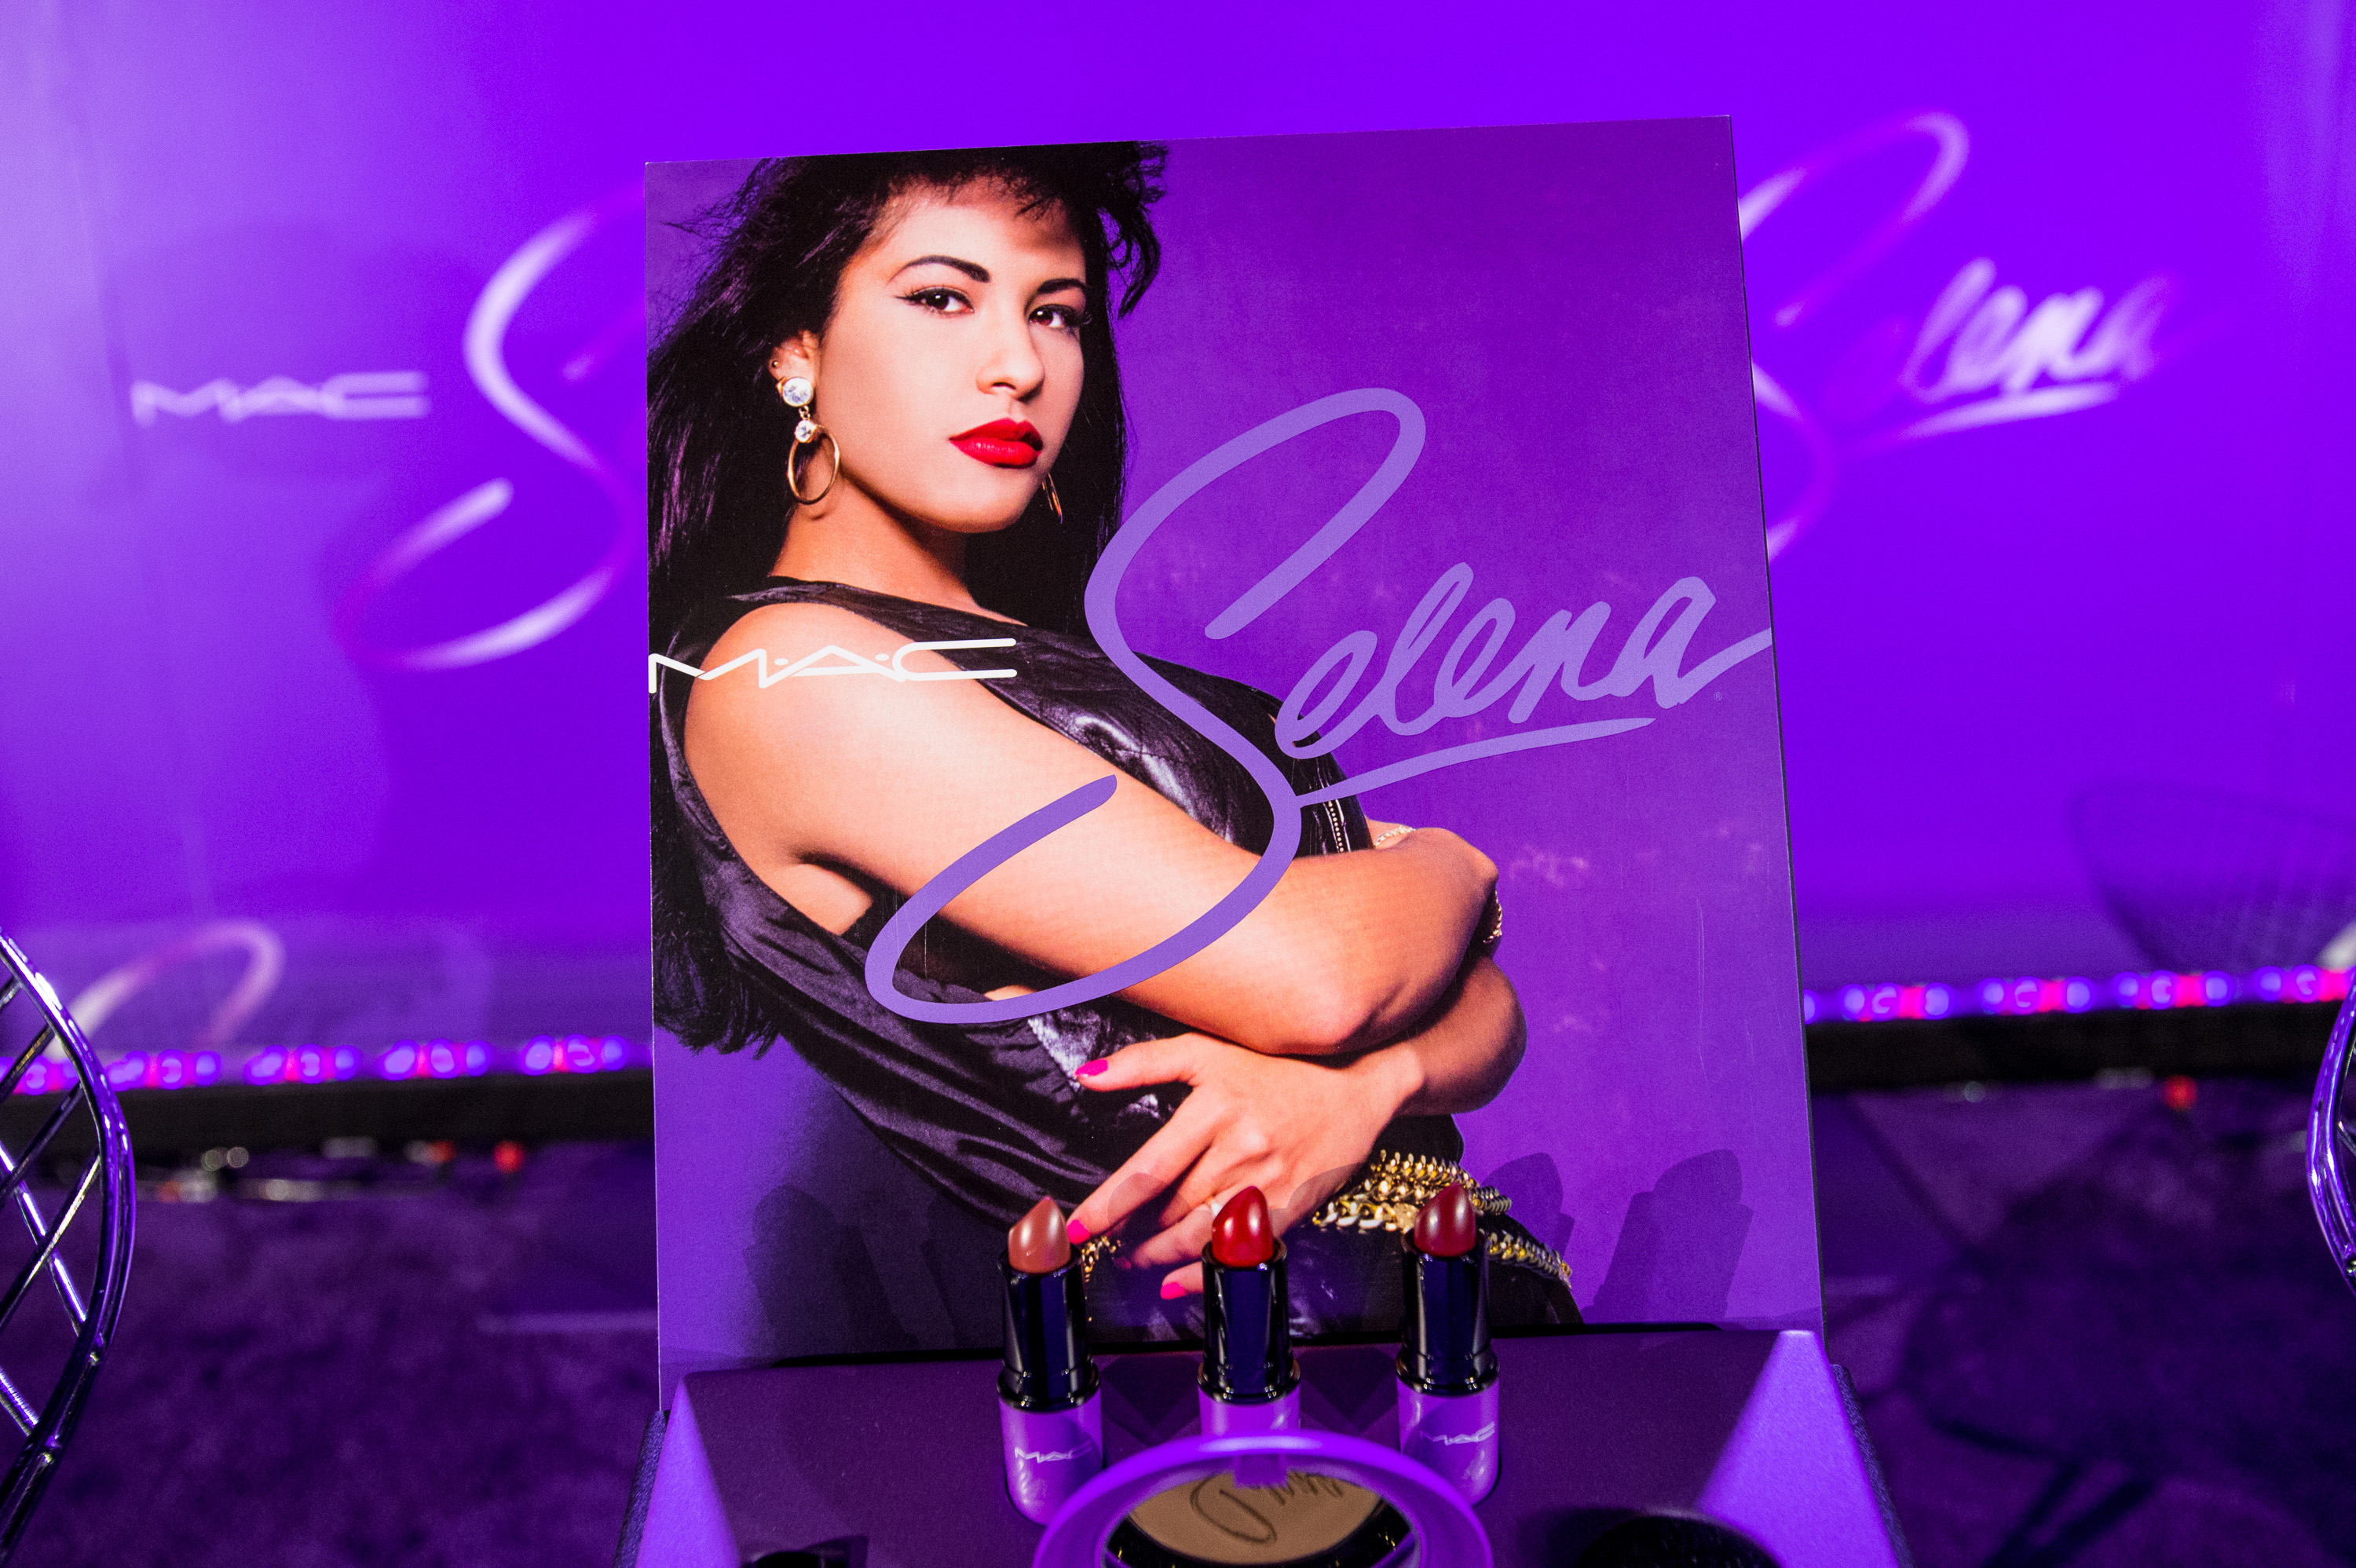 MAC Selena World Premiere, Corpus Christi TX - Press Conference and Media Welcome